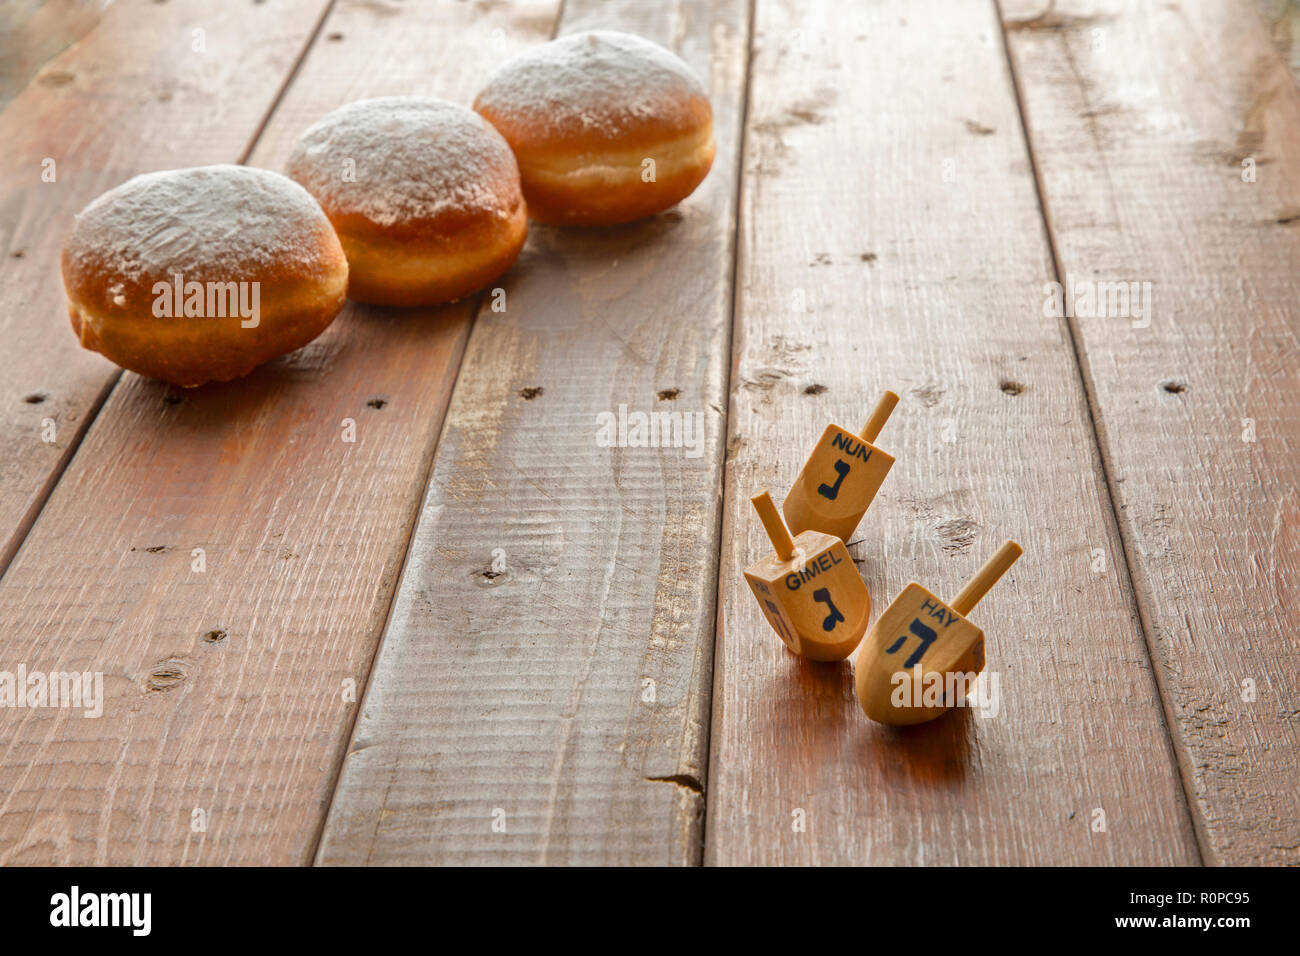 Still life for jewish holiday Hanukkah with 3 donuts and 3 dreidels on wooden rustic table.Hanukkah celebration concept.Shallow DOF Focus on the Deidl - Stock Image